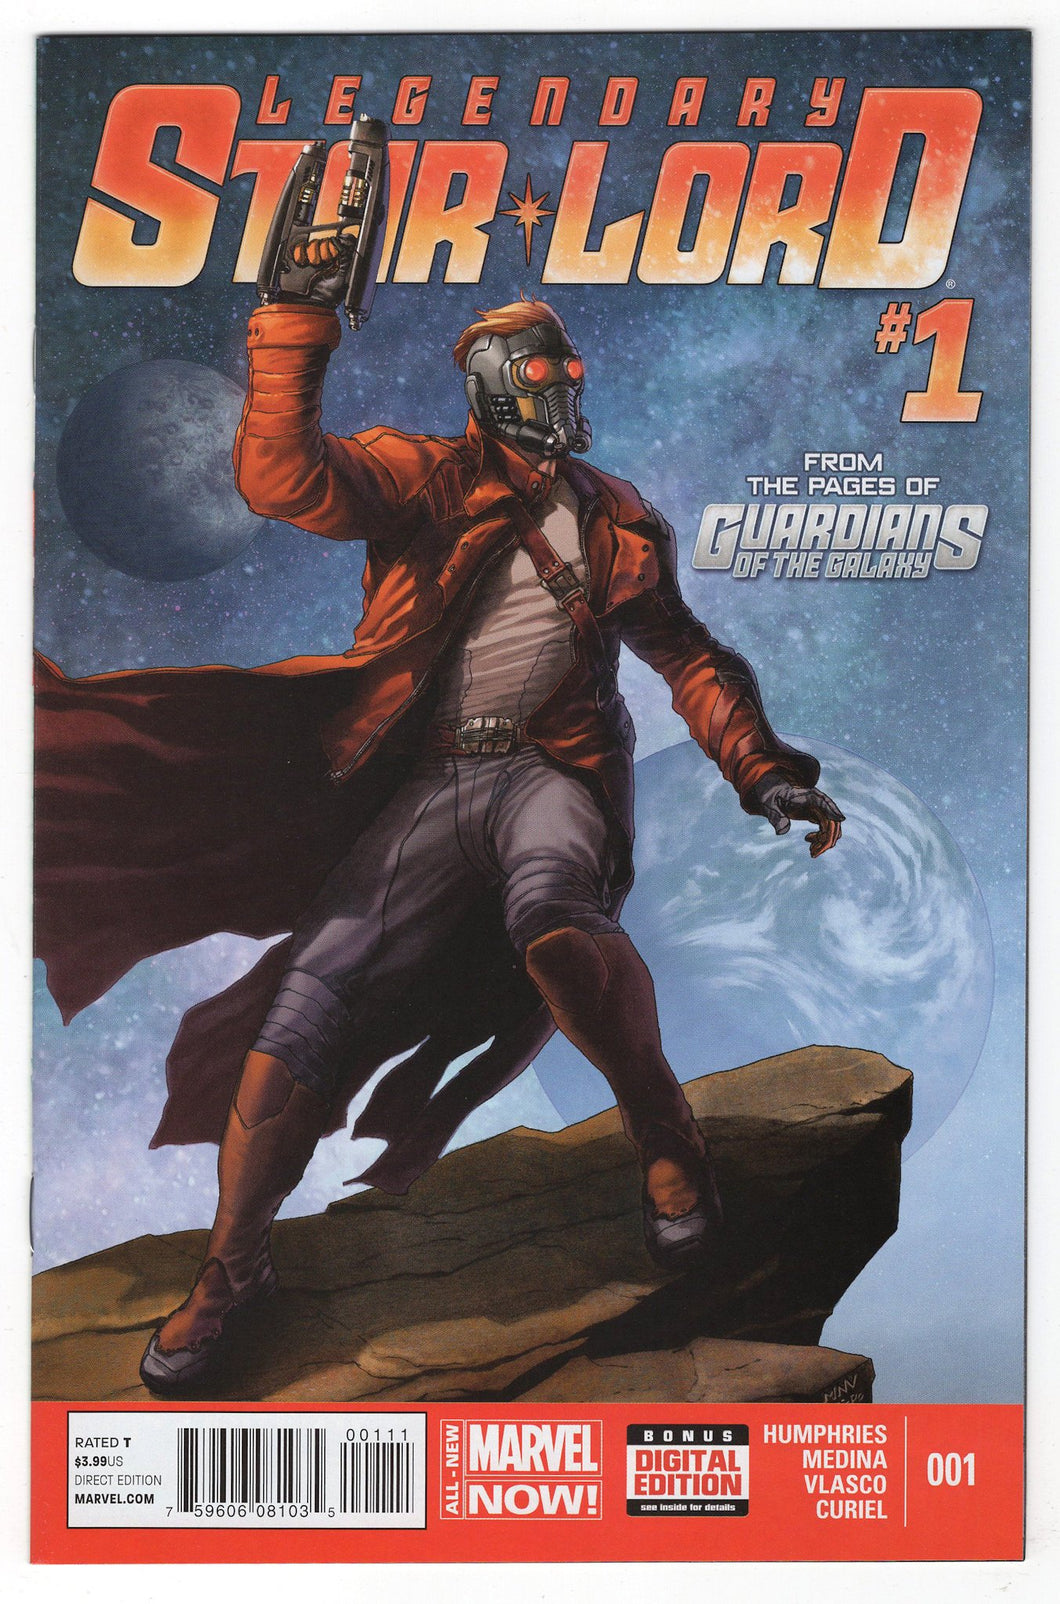 Legendary Star Lord #1 Cover Front